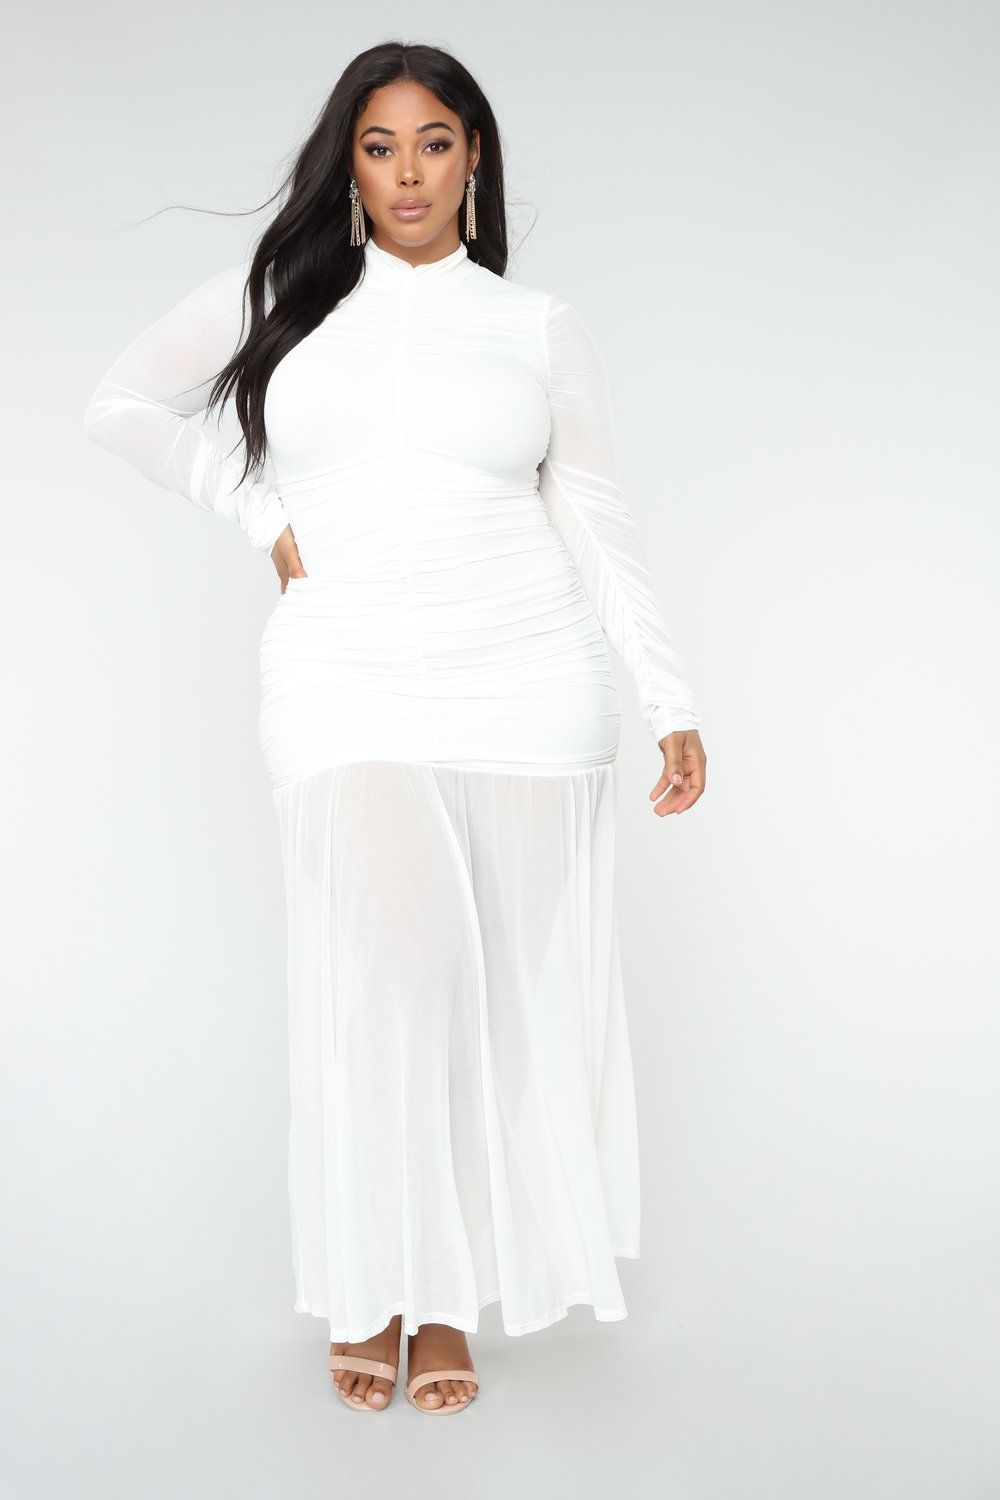 Cardi Party Ruched Dress - White | Plus size in 2019 | White ...